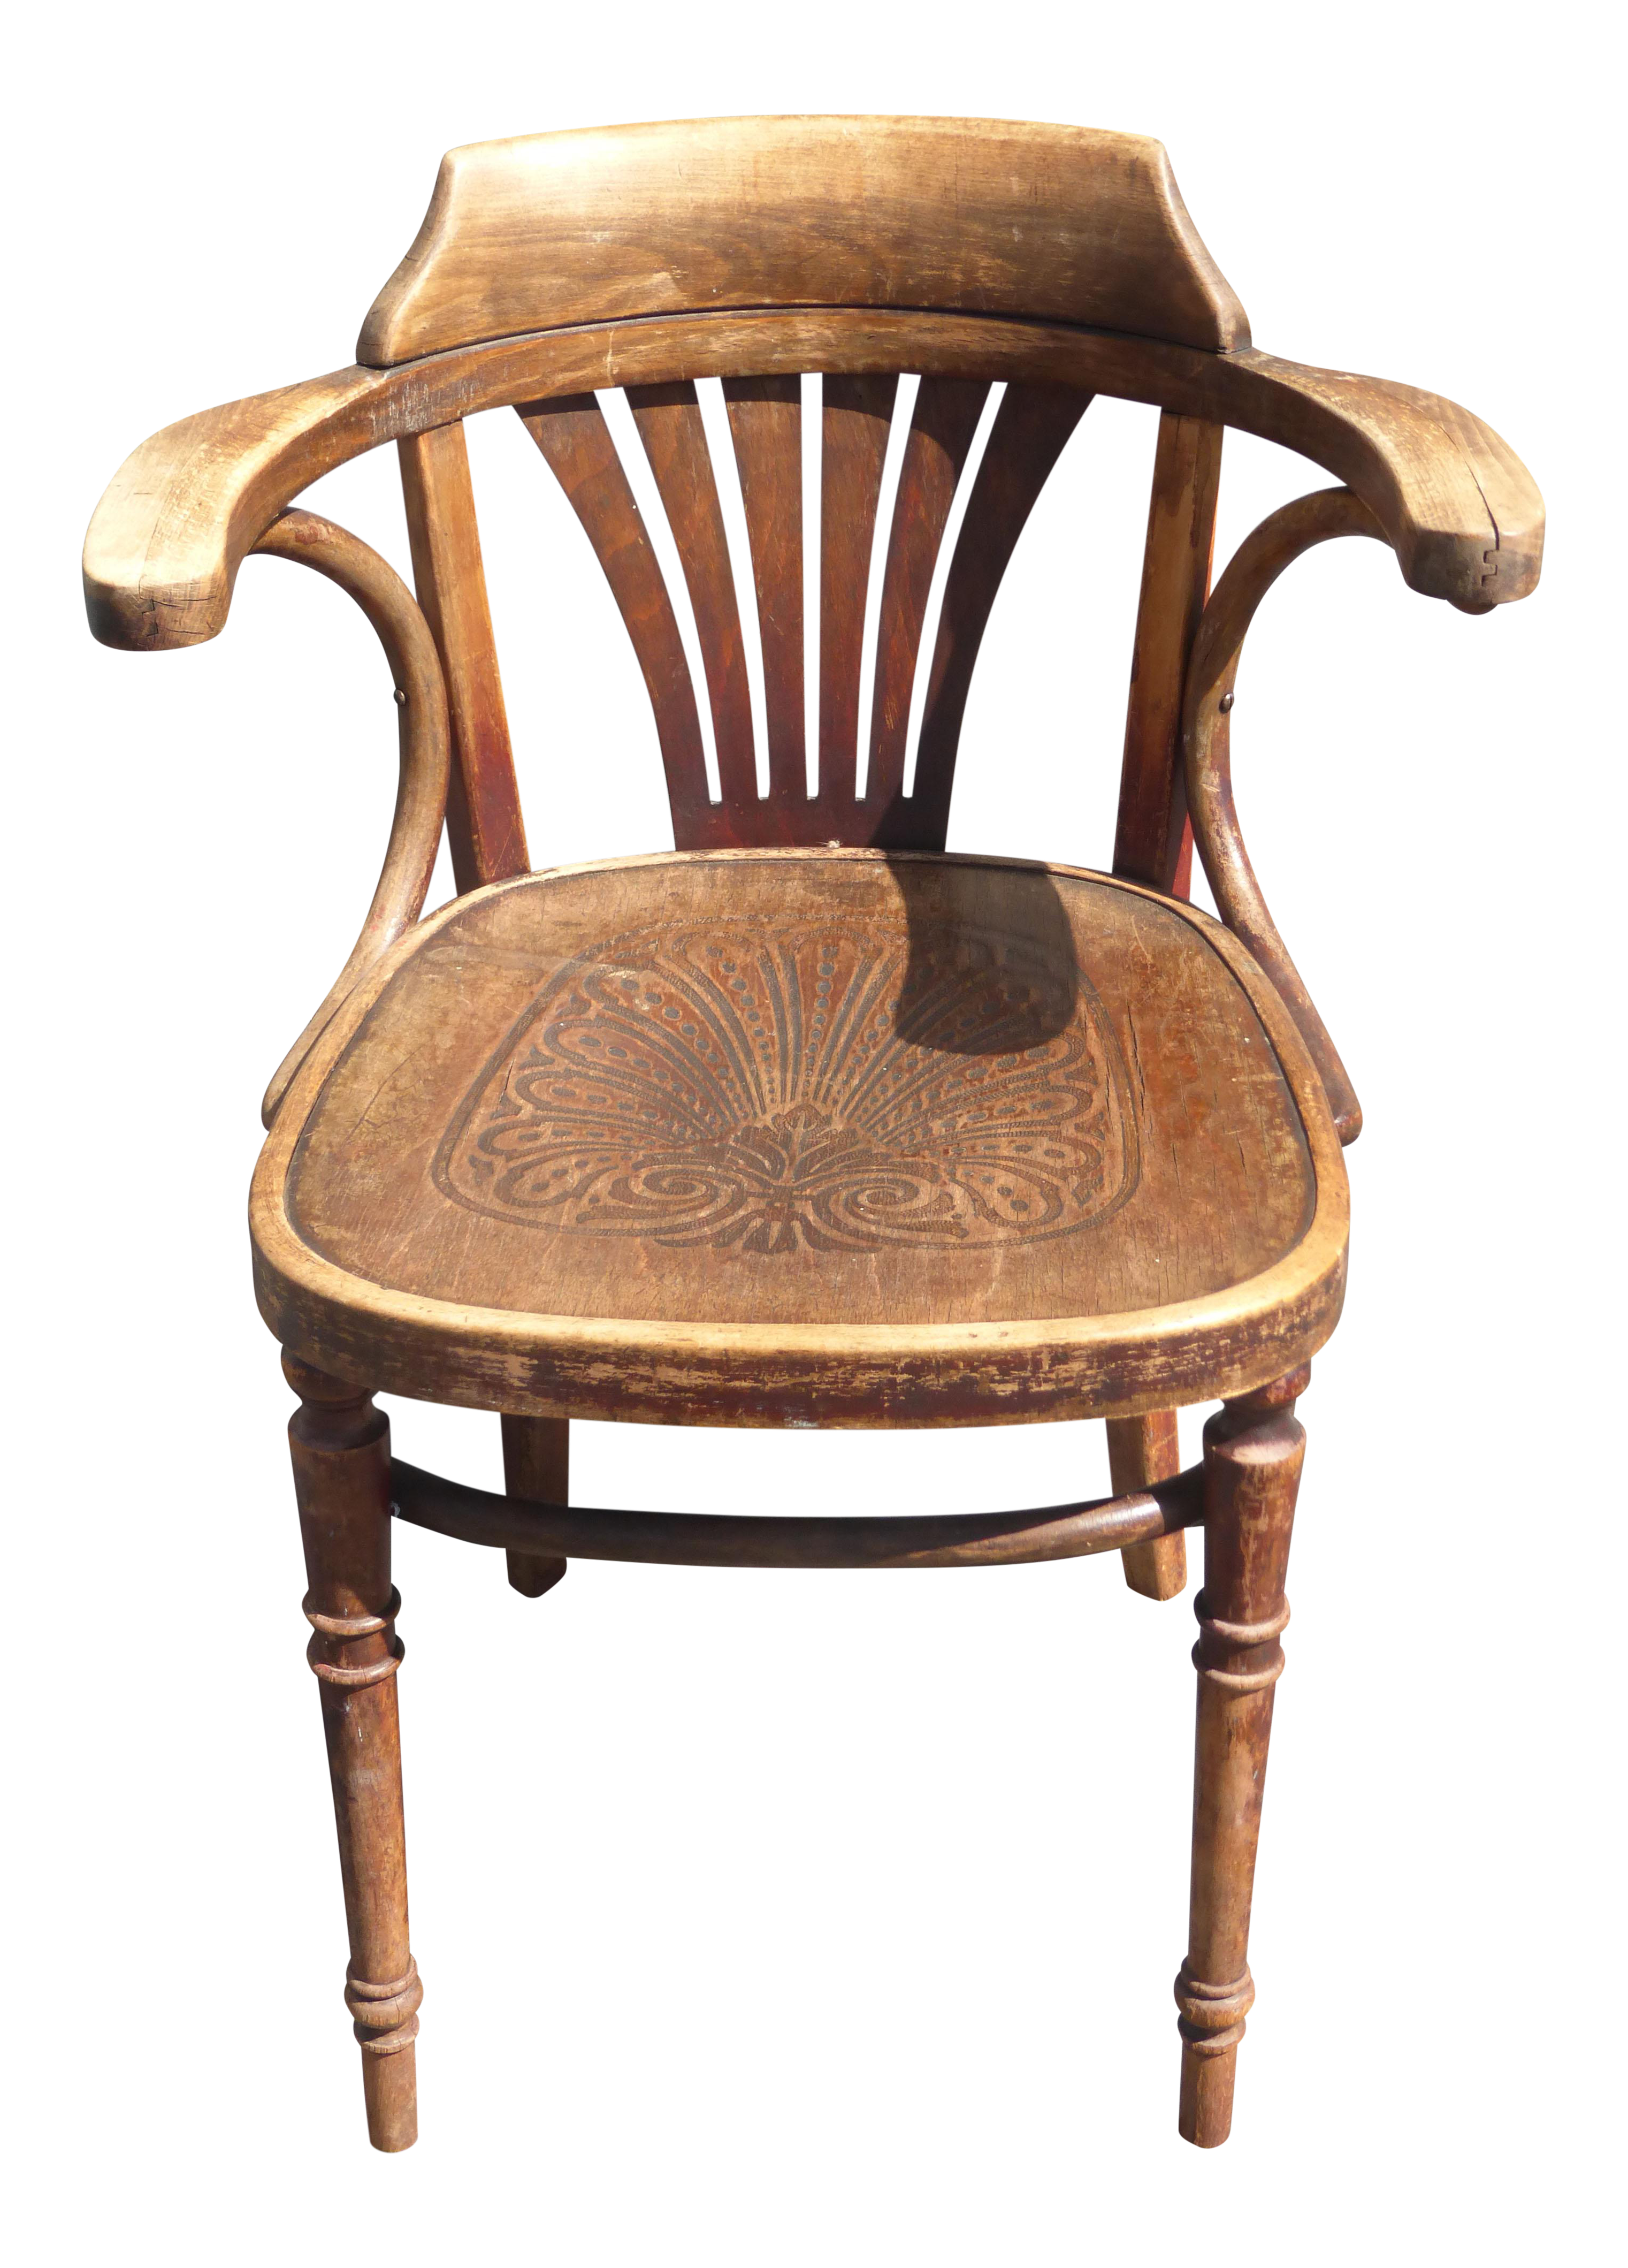 Prime Unique Antique Rustic French Ornately Carved Wood Floral Design Accent Chair Gmtry Best Dining Table And Chair Ideas Images Gmtryco